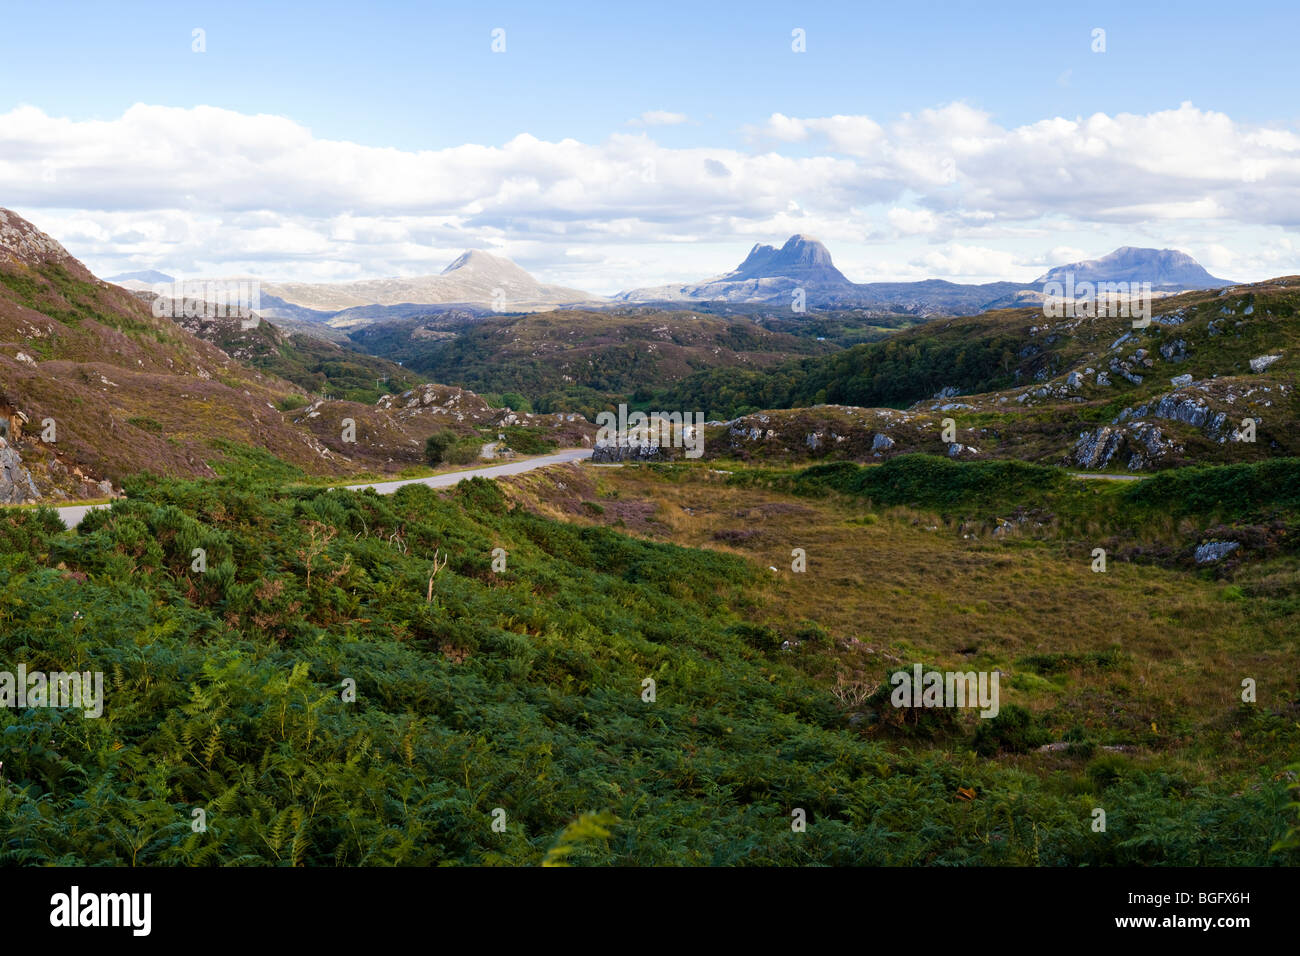 A view looking southeast from Clashnessie, Highland, Scotland towards Canisp, Suilven and Cal Mor Stock Photo